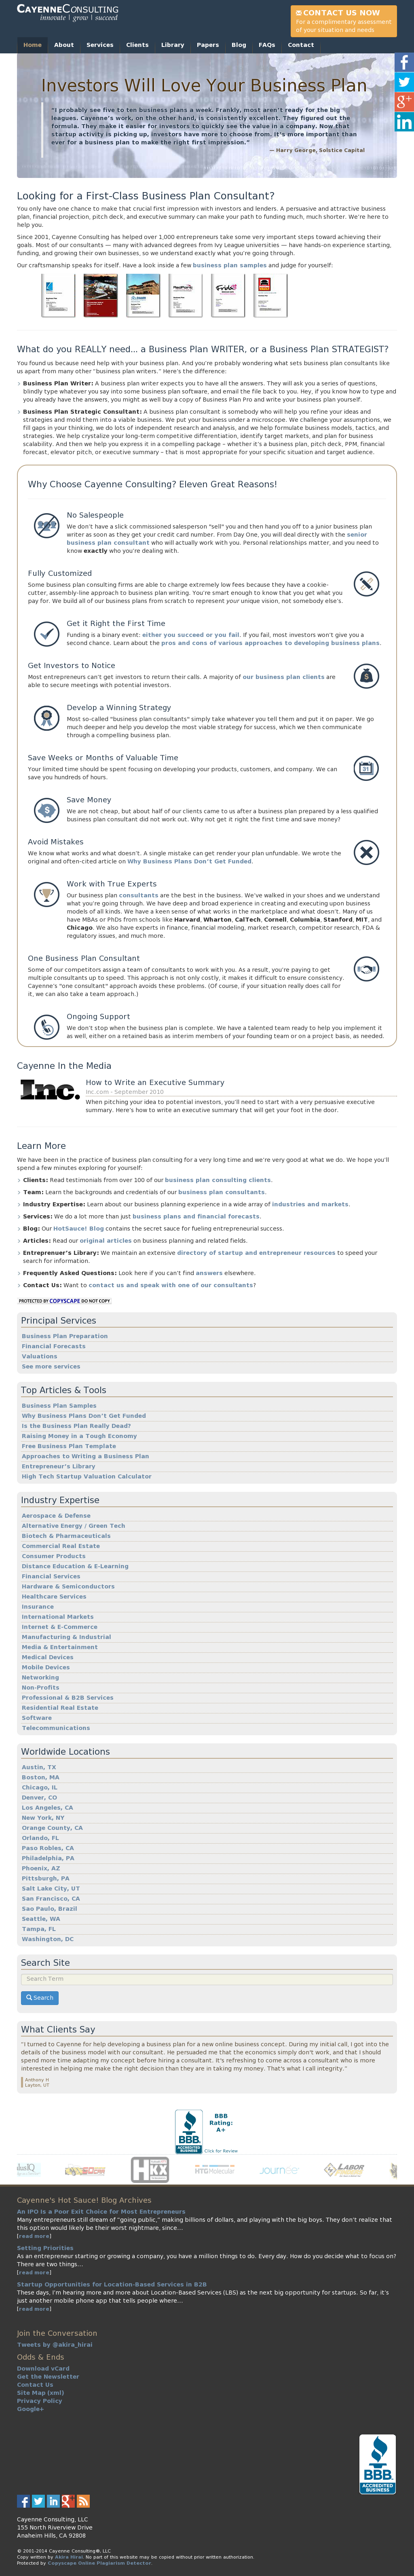 Cayenne Consulting Competitors, Revenue and Employees